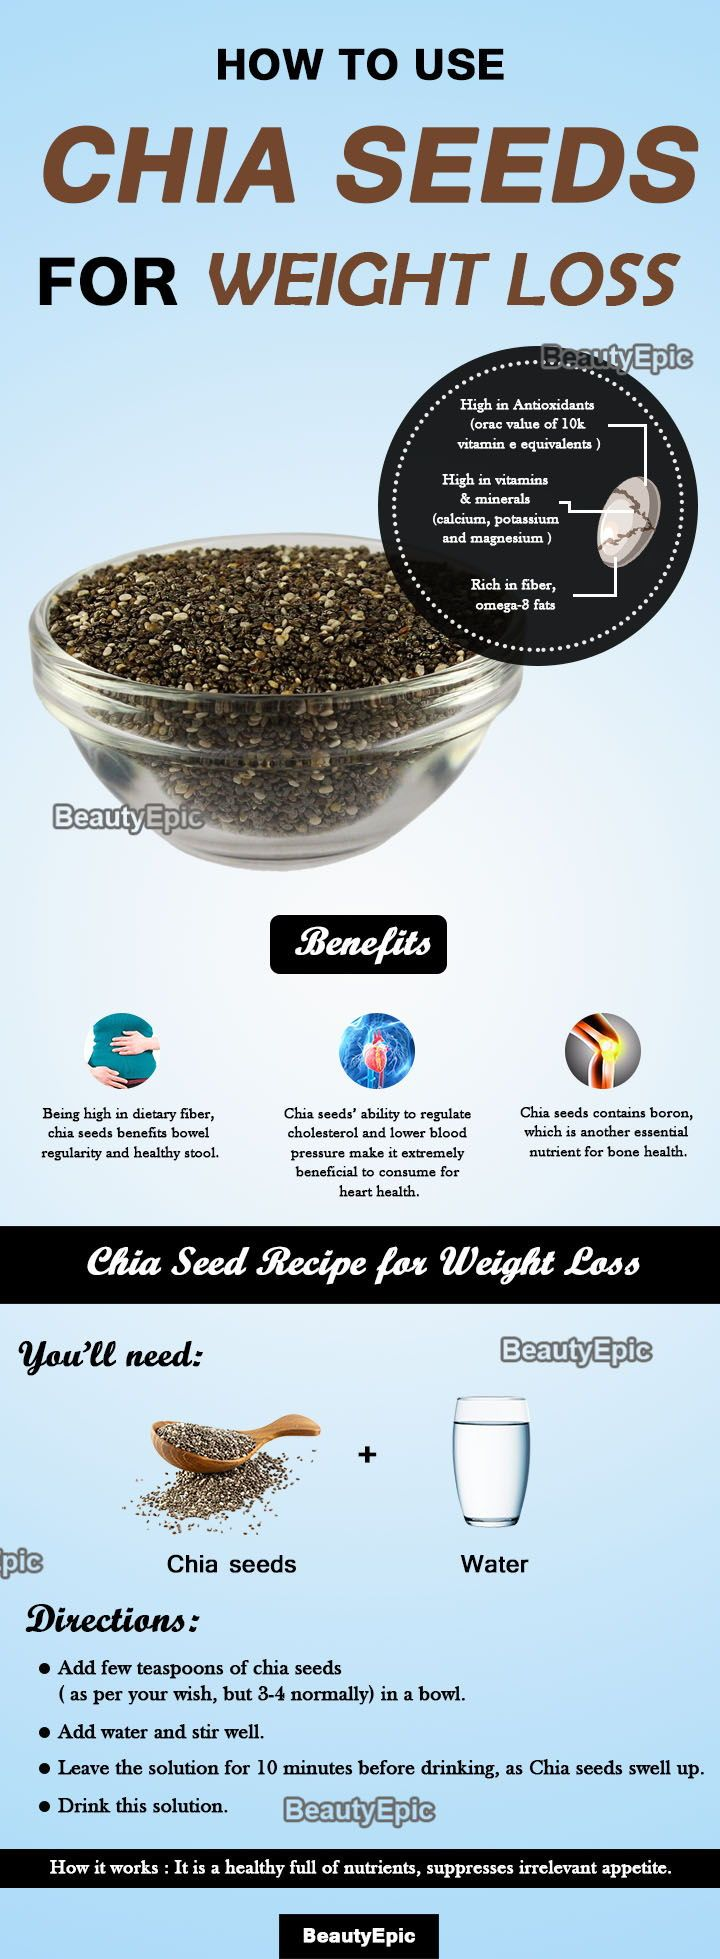 How Do Chia Seeds Help you Lose Weight? #weightloss